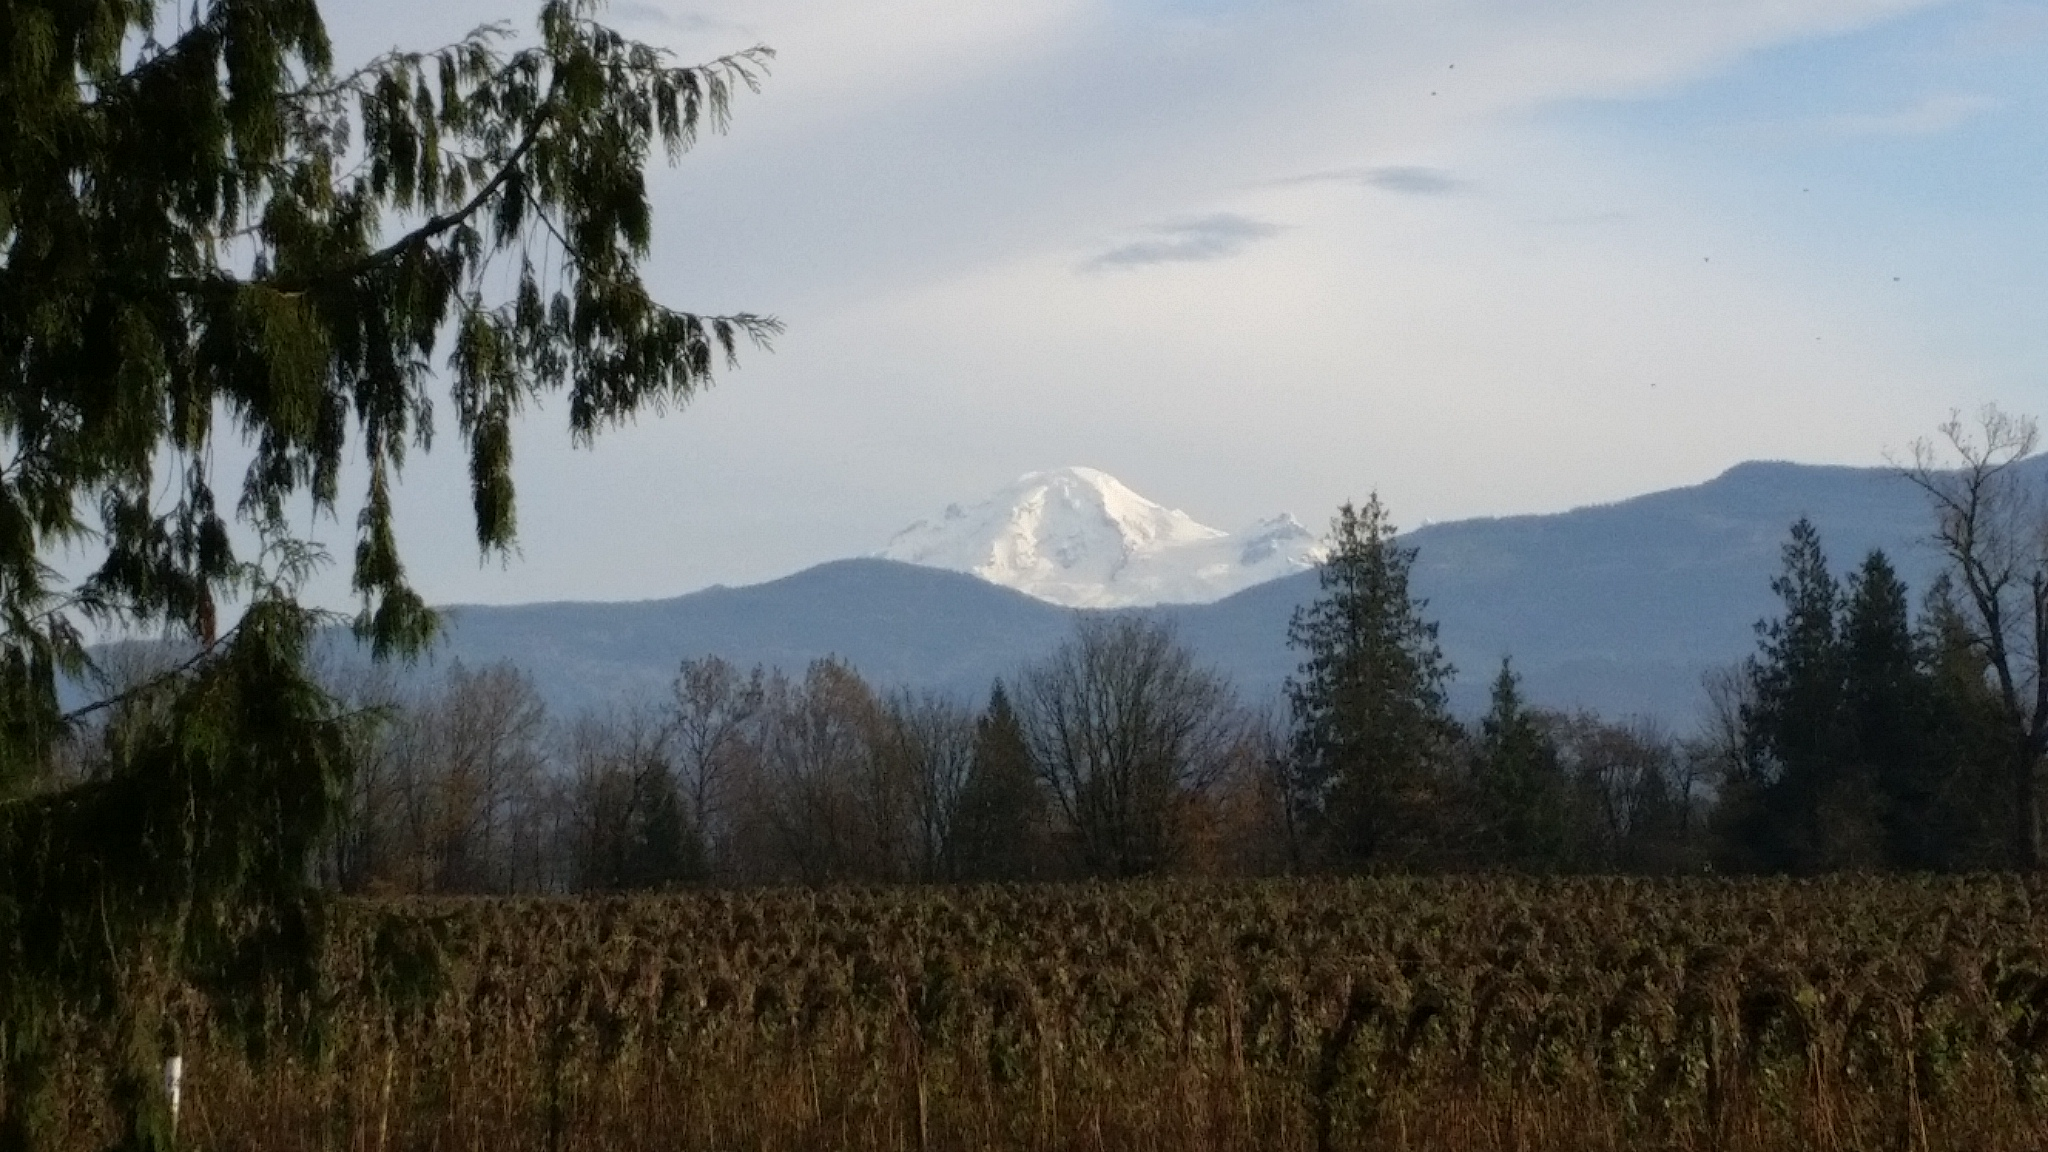 Mt Baker from our church parking lot